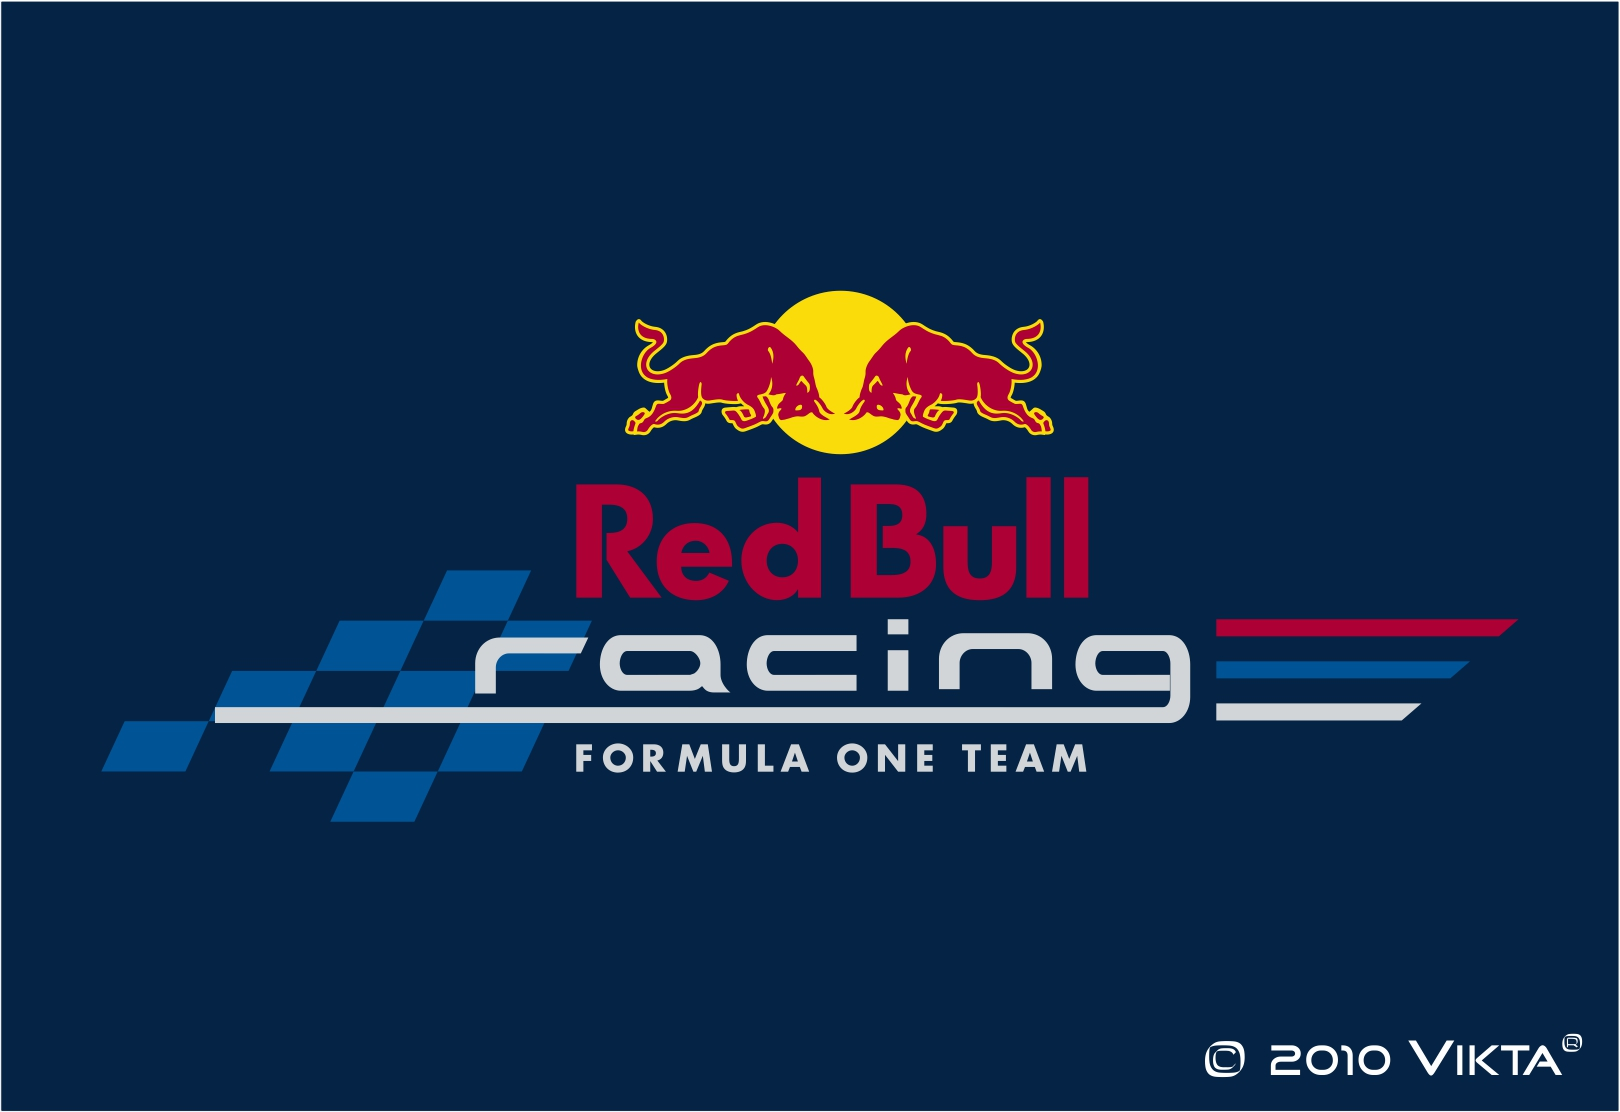 F1 hd wallpapers 2014